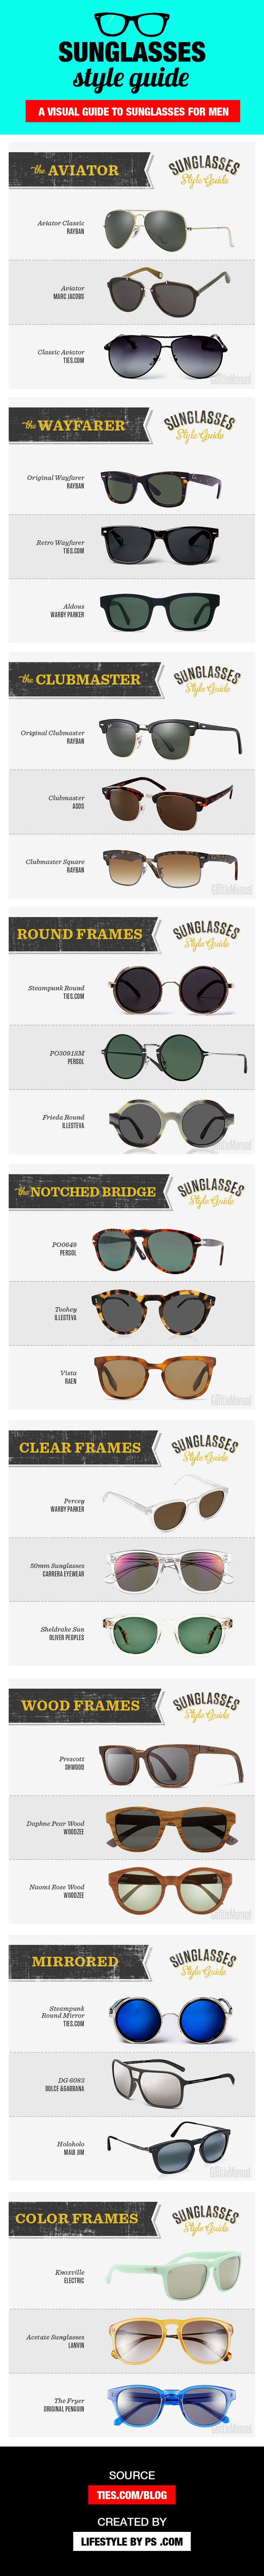 A Visual Guide To Sunglasses For Women - Infographic | LIFESTYLE BY PS